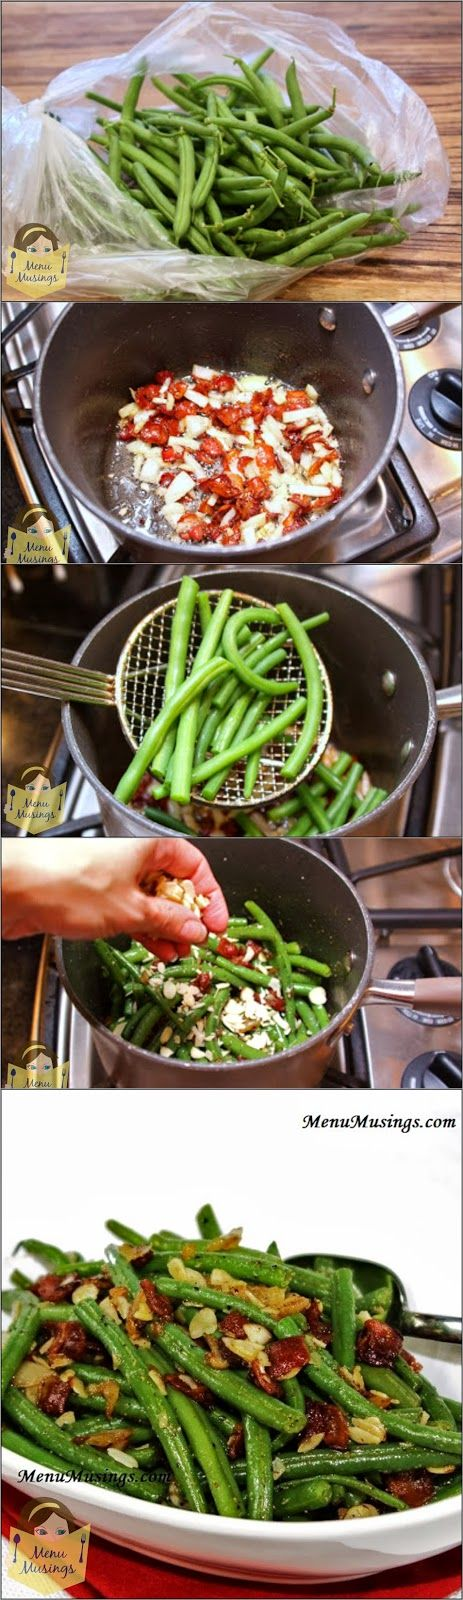 """Lily's Maple Bacon Green Beans with Slivered Almonds - I can't tell you how many green bean """"converts"""" we've had with these.. always fresh, never from the can! Step-by-step photos to making my daughter's favorite vegetable!"""